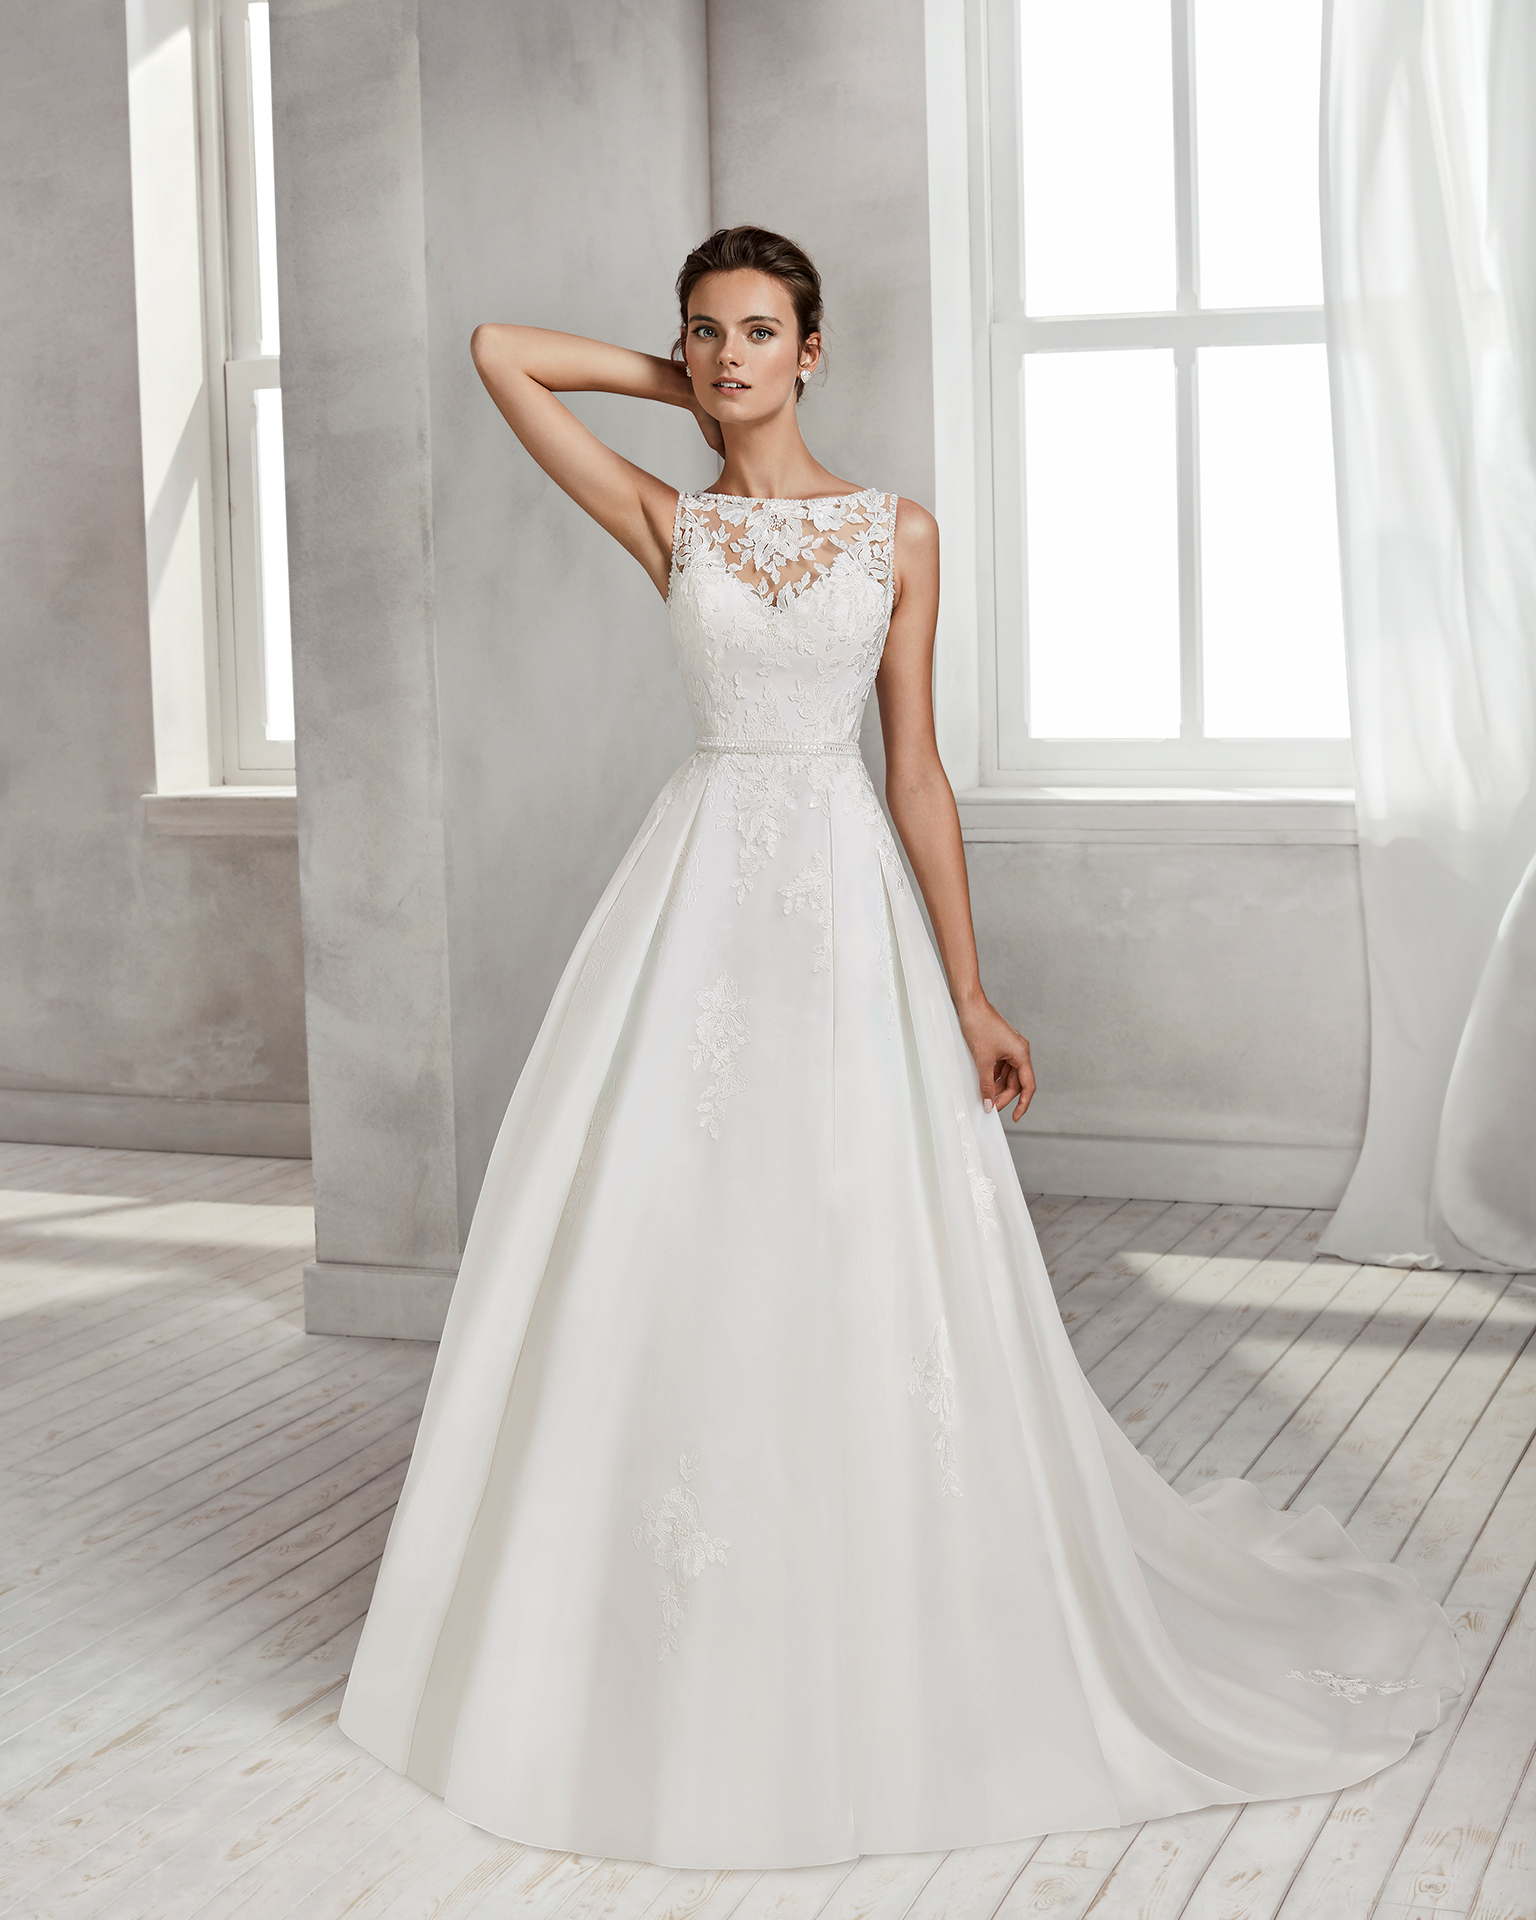 Princess-style beaded lace and organza wedding dress with illusion neckline and beaded lace back.